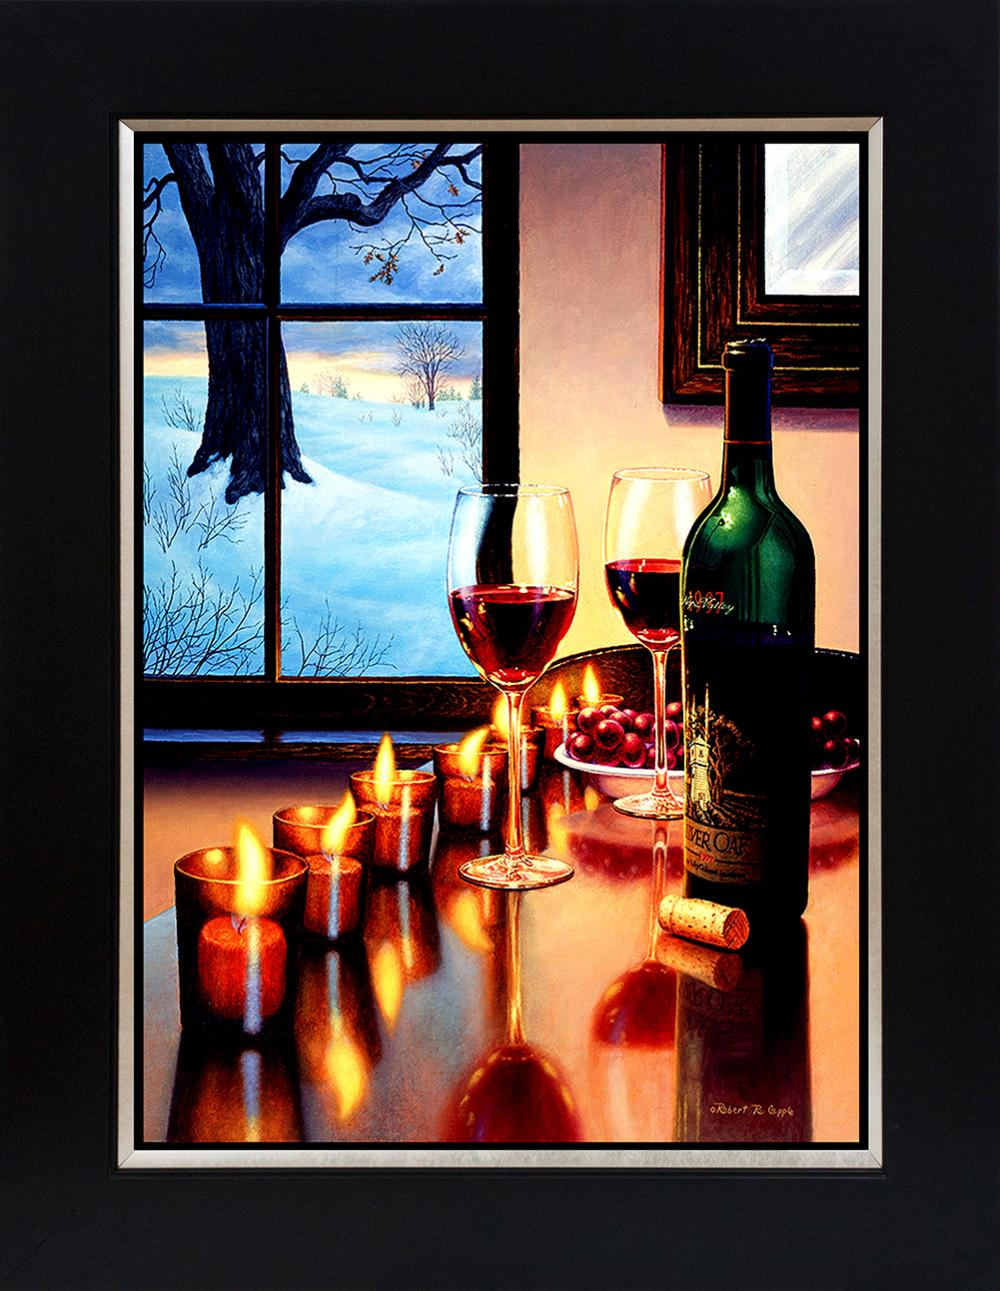 Lot 2766: Robert Copple Wine Series Hand embellished Limited edition on canvas